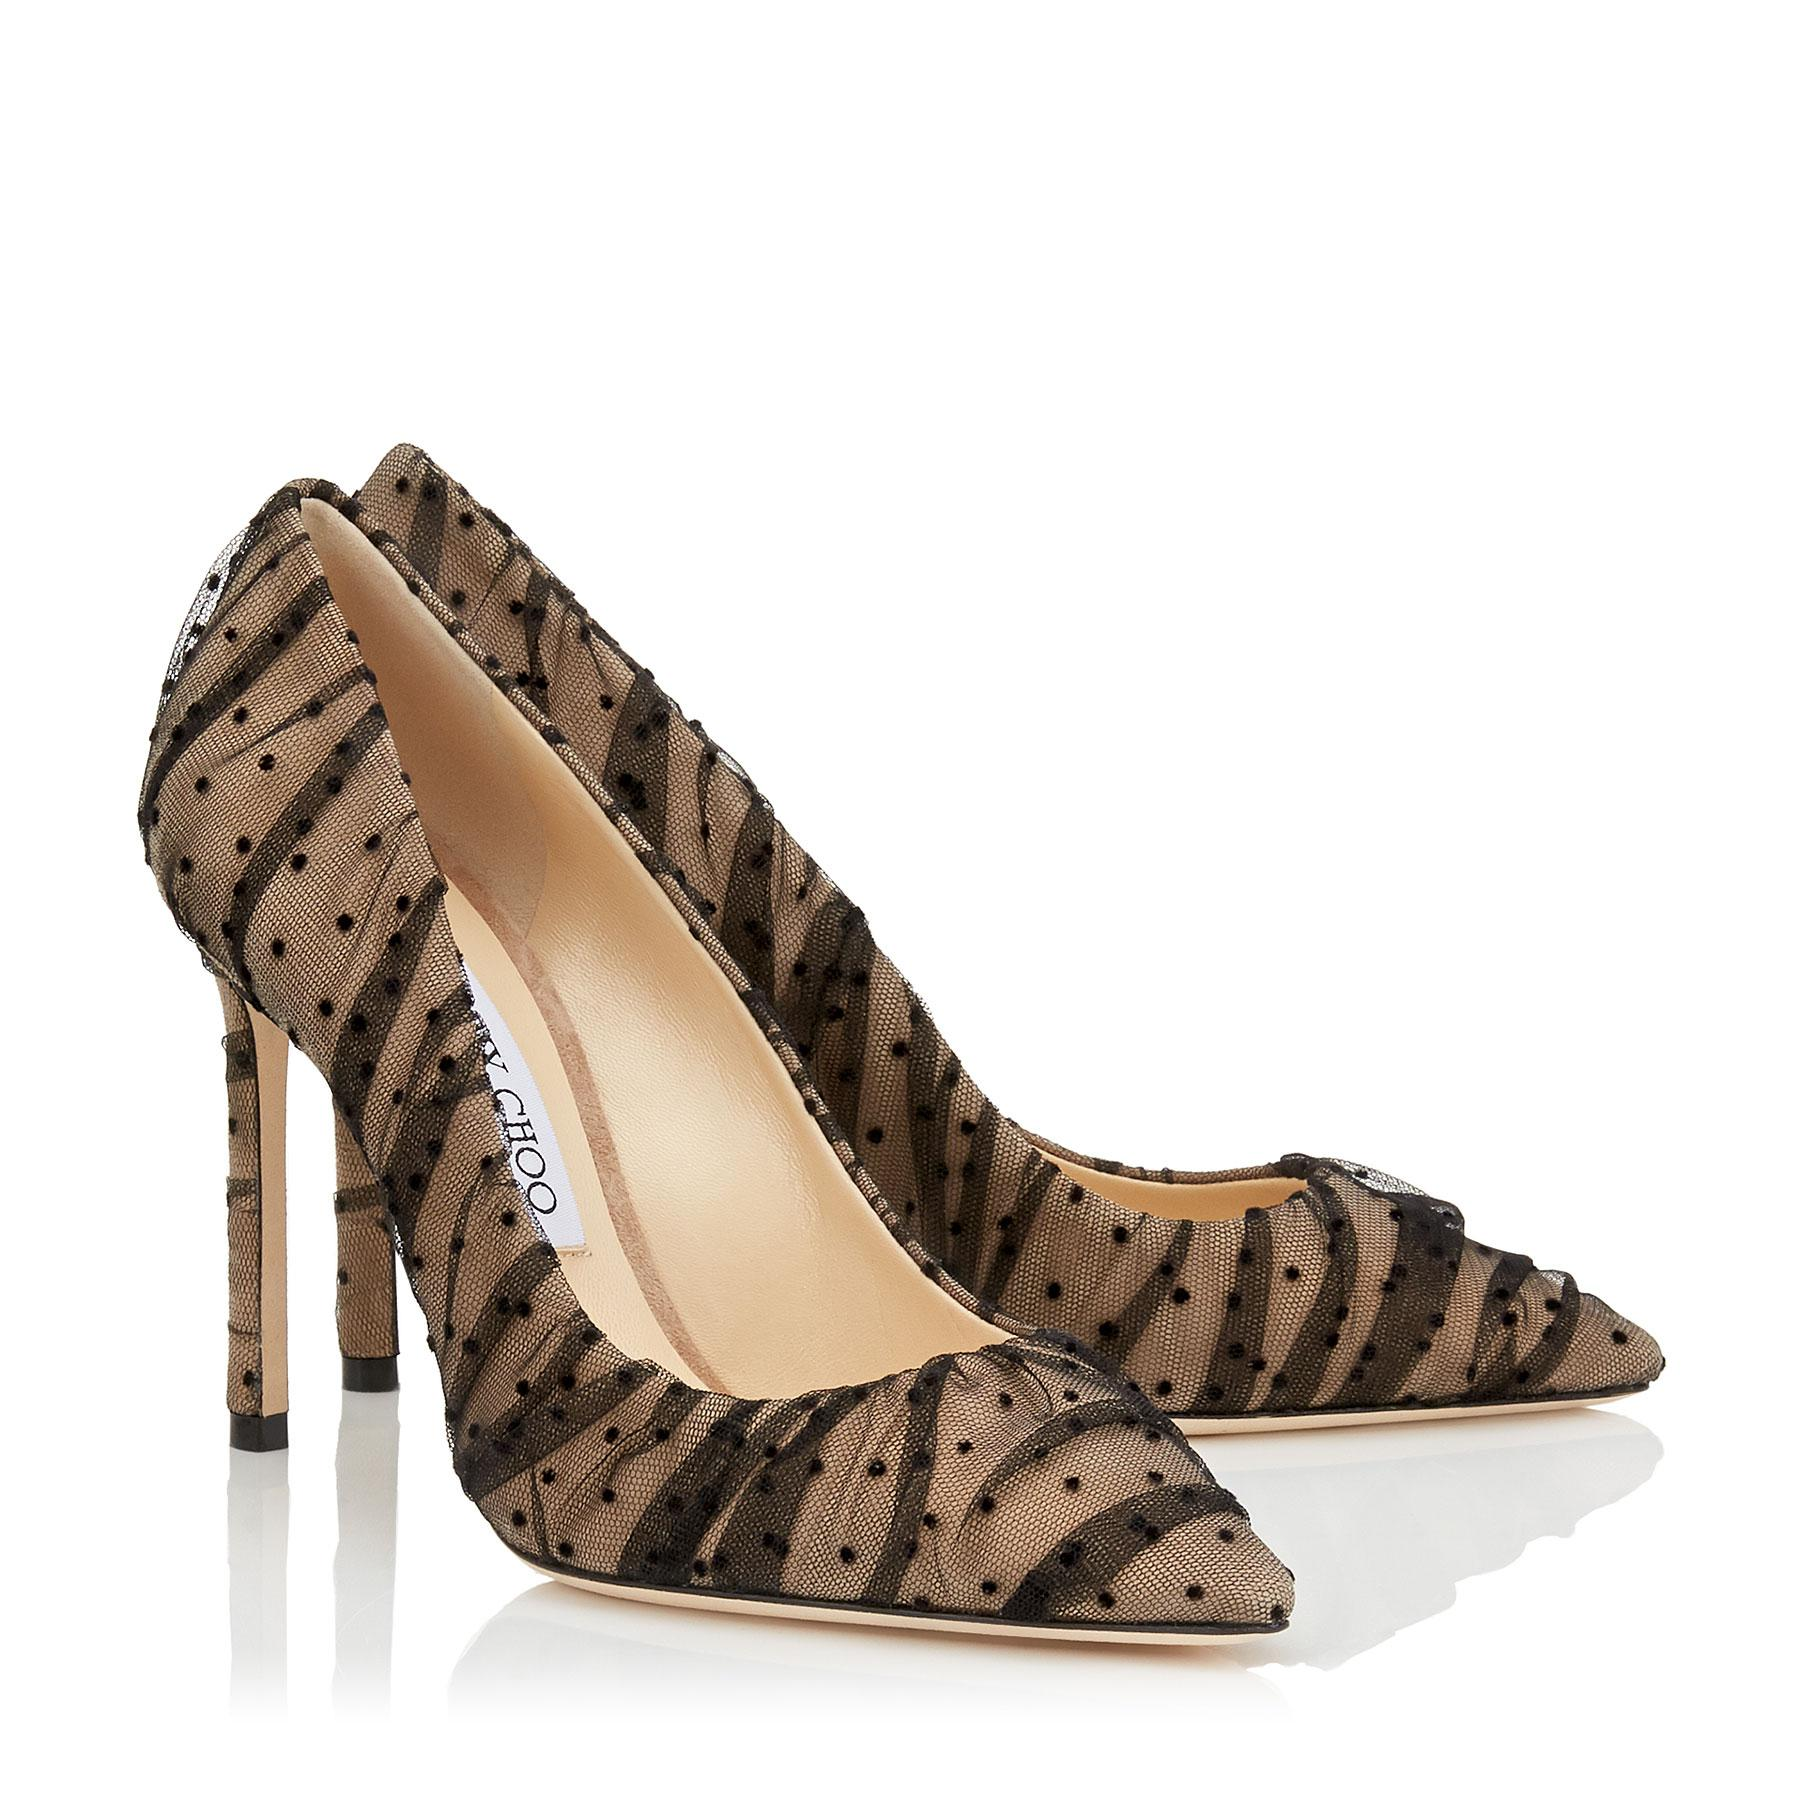 076c22f4d875 Jimmy Choo - Black Romy 100 Nude Suede Pointy Toe Pumps With - Lyst. View  fullscreen